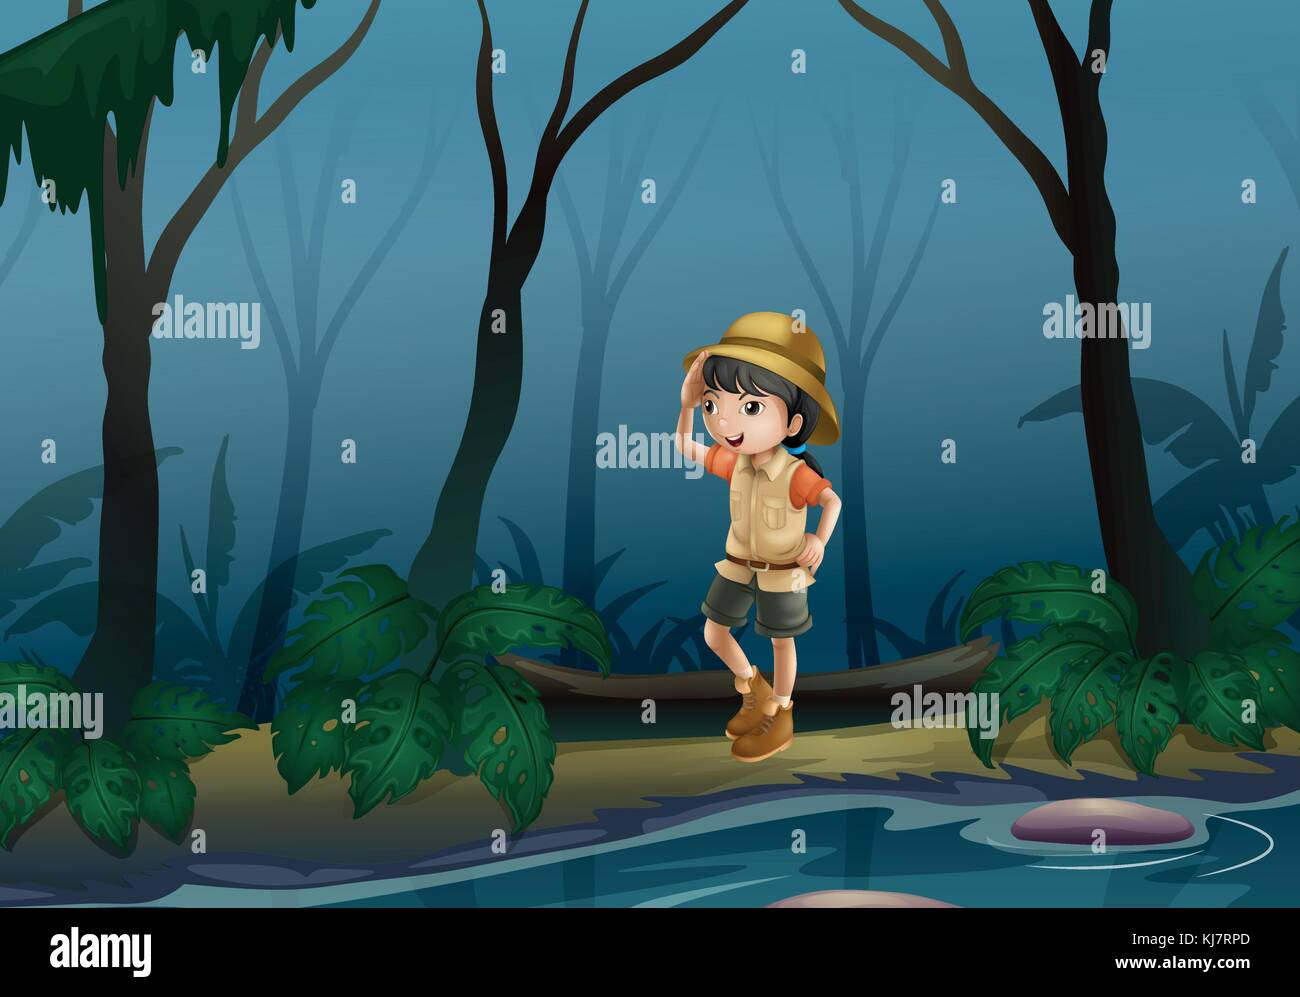 Illustration of a girl in the middle of the forest near the river - Stock Vector